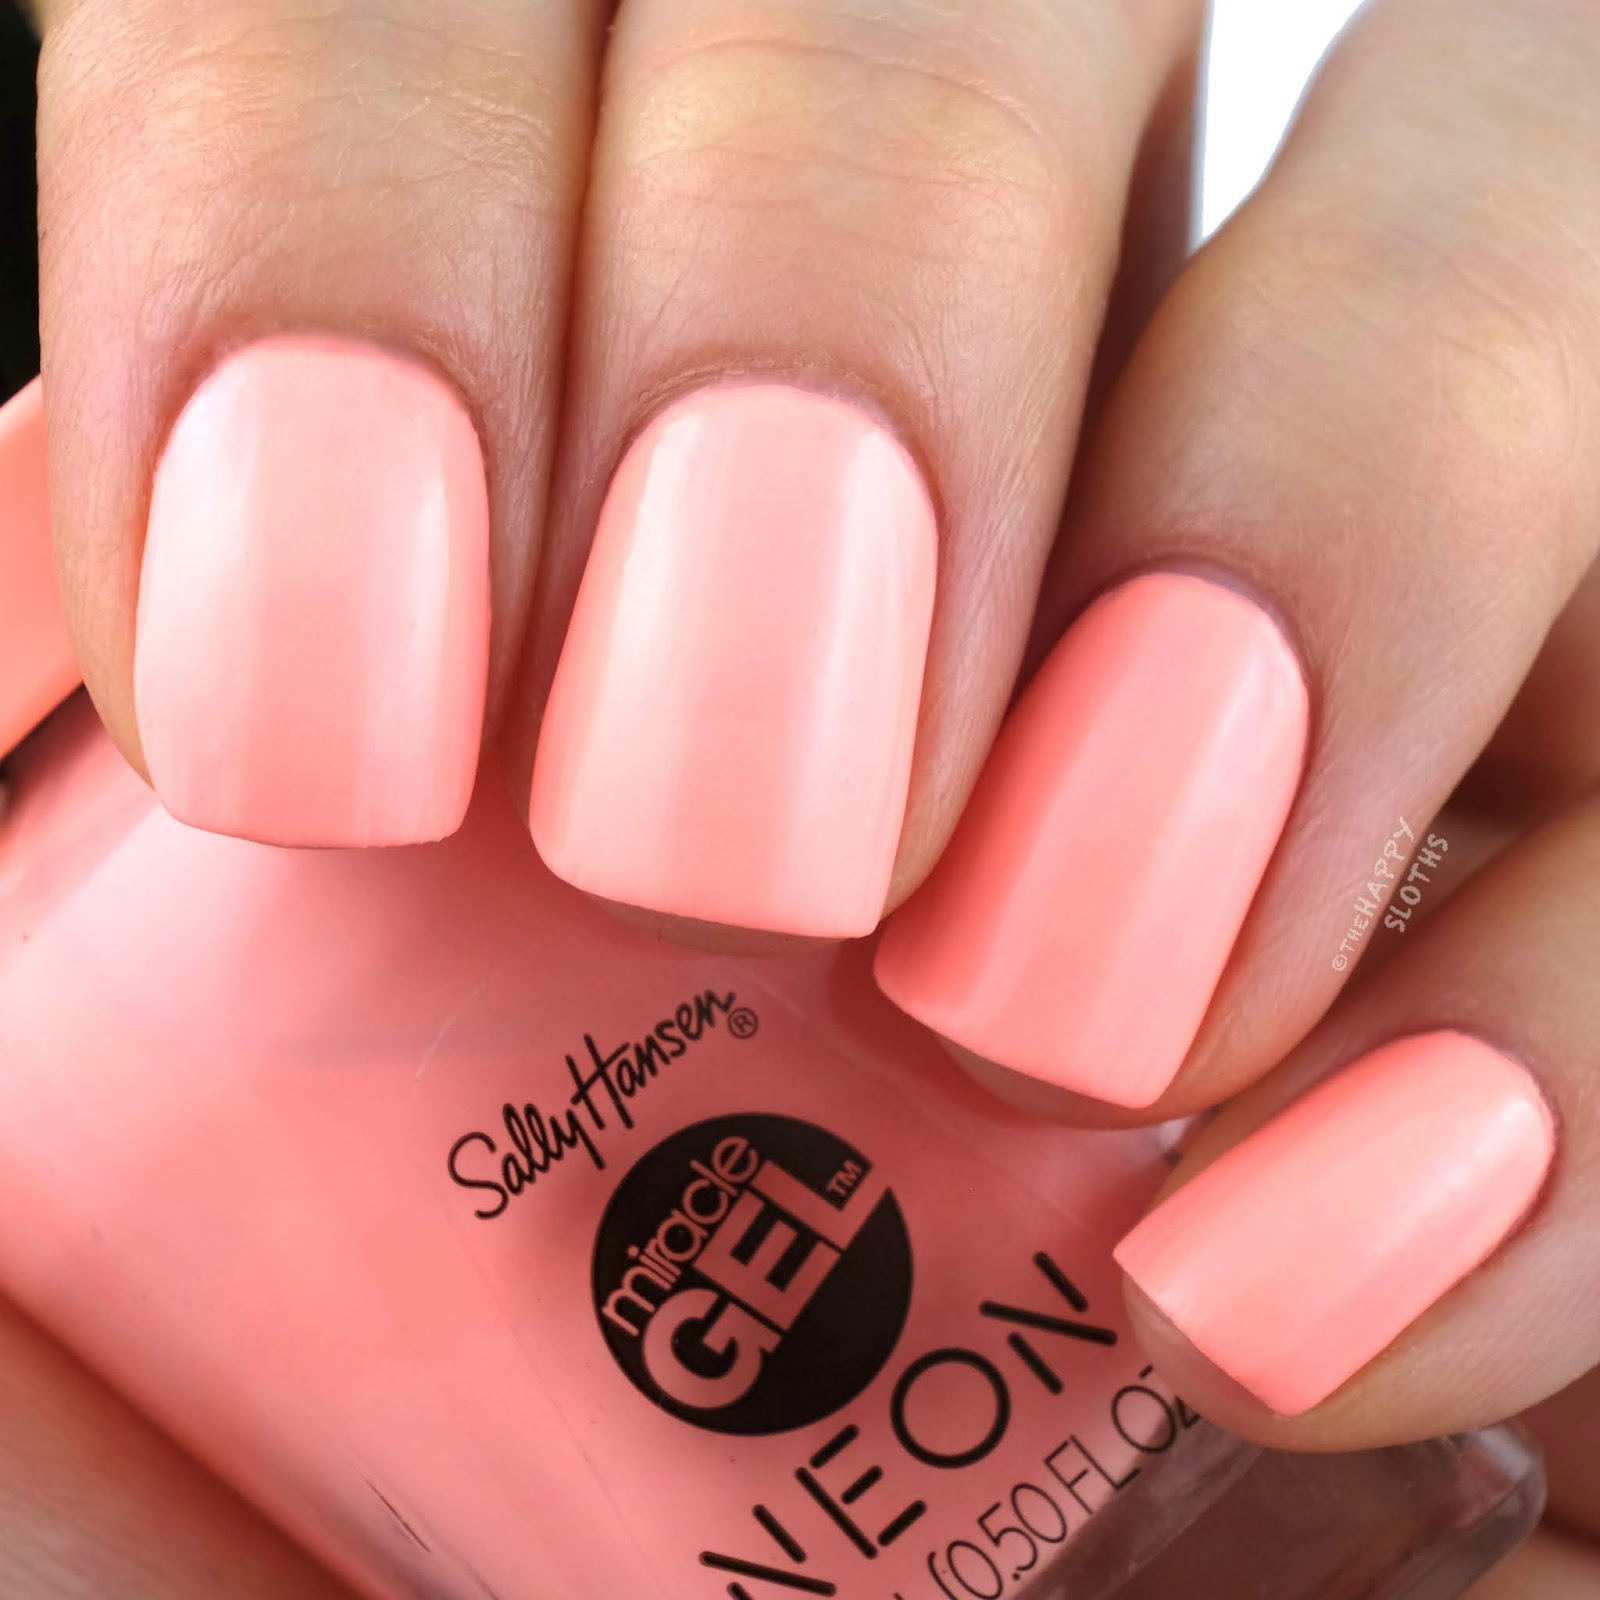 Sally Hansen | Miracle Gel Summer 2019 Neon Collection | Peach Please: Review and Swatches